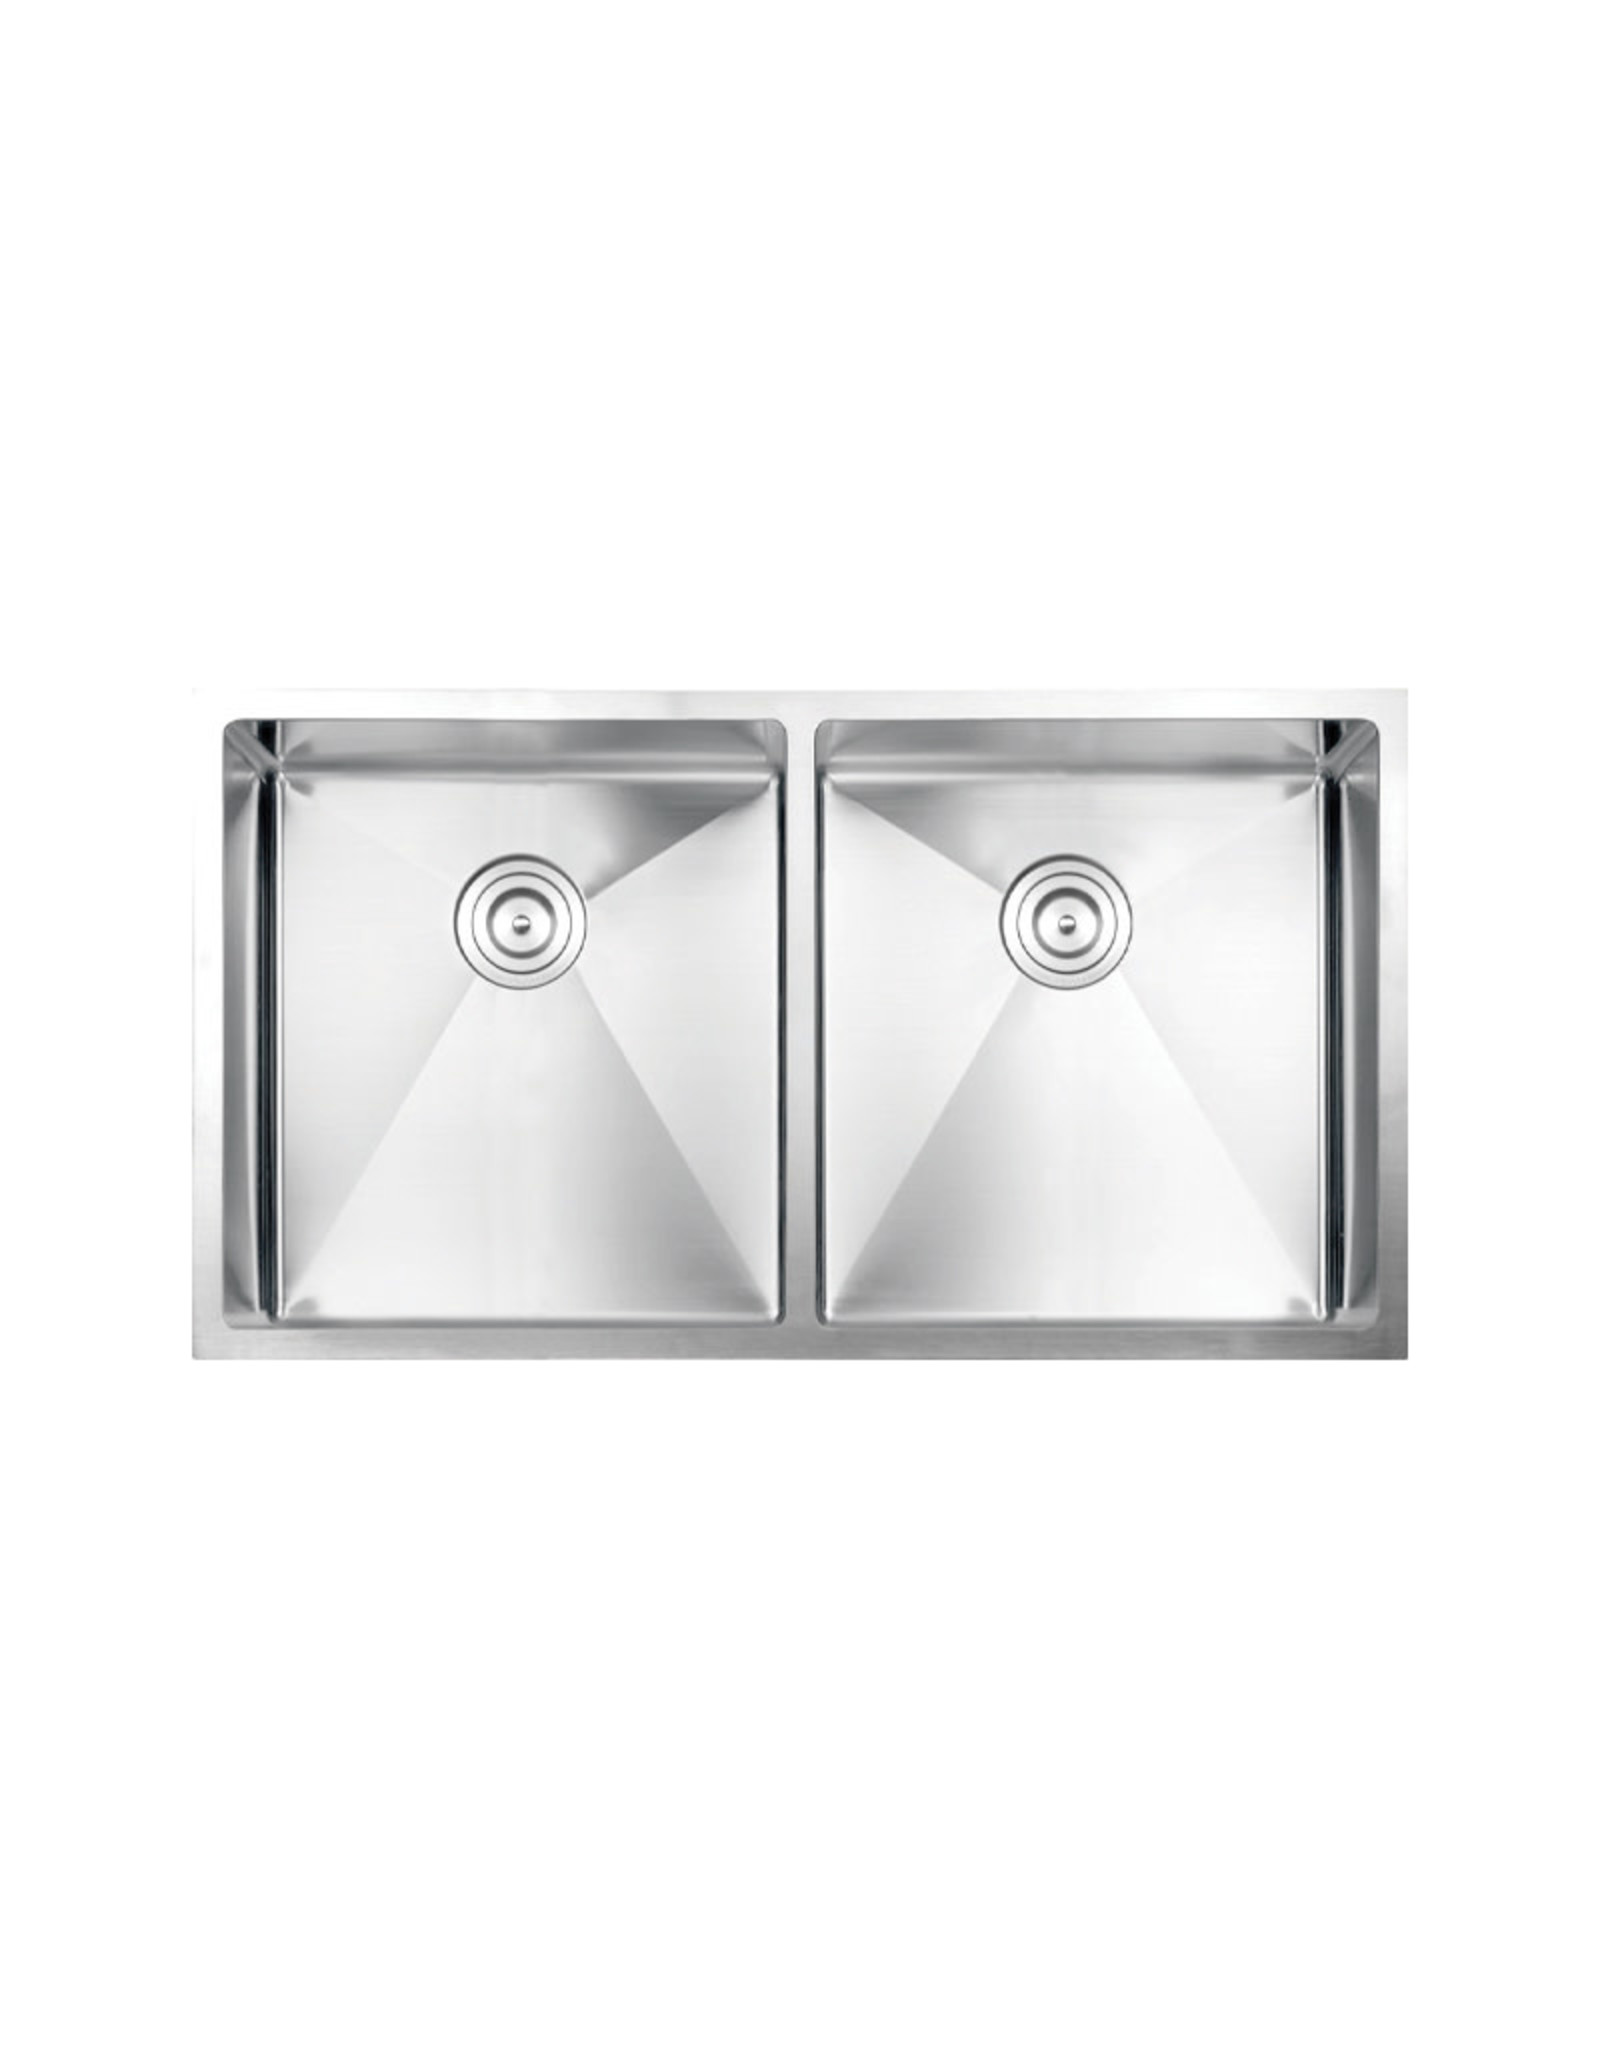 "Vogt Volker 16R Undermount Kitchen Sink Double Bowl (50/50) 34"" x 18"" x 10"""